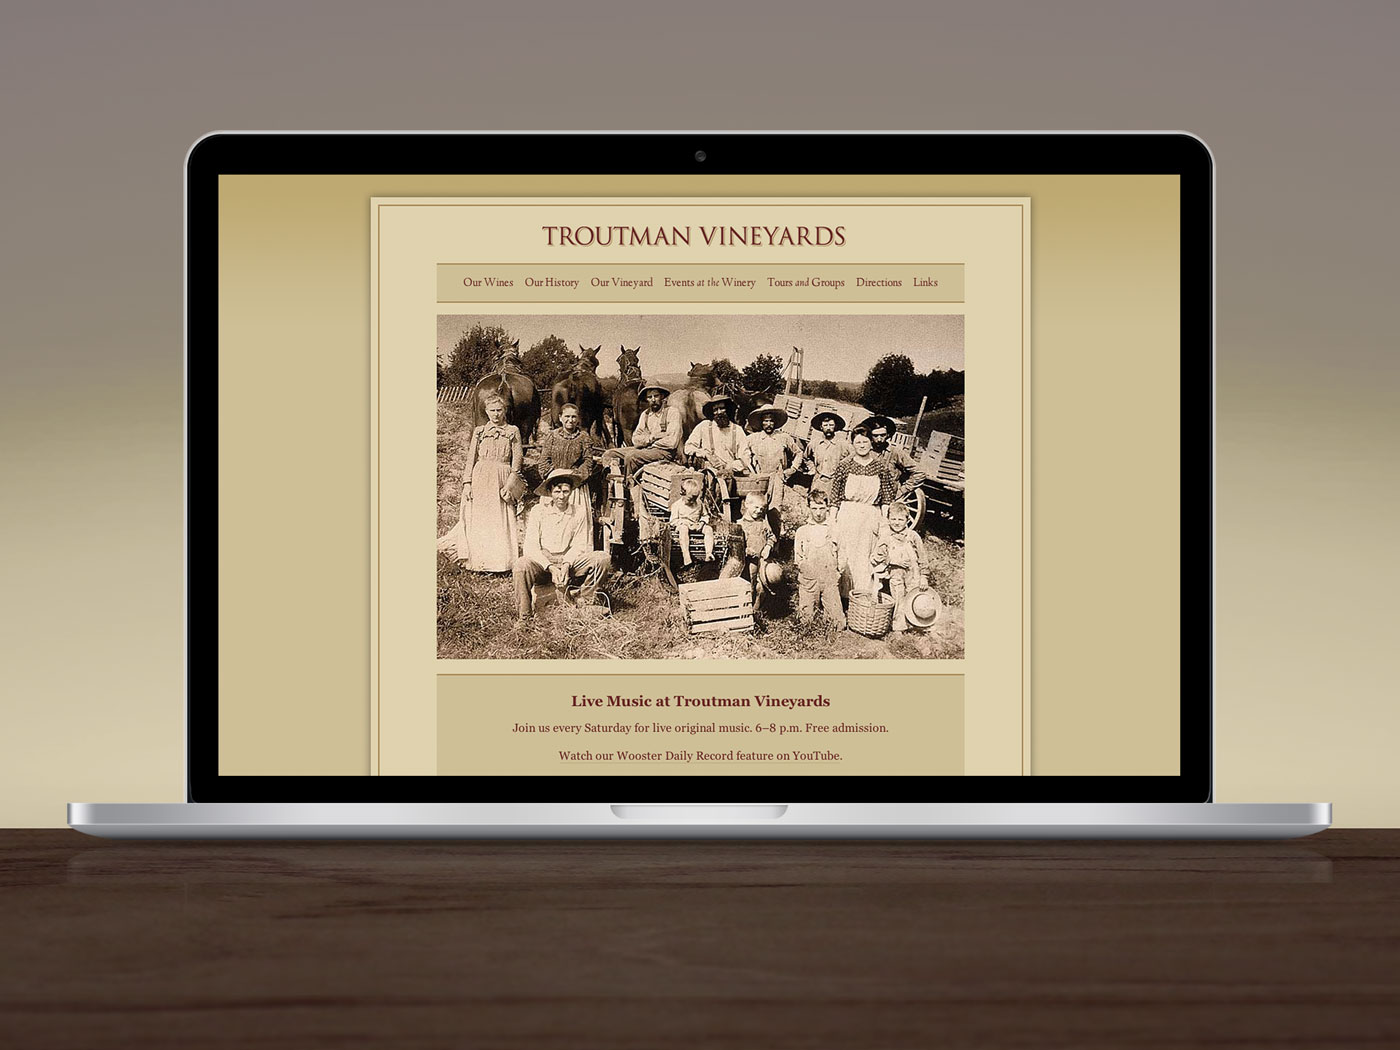 Troutman Vineyards